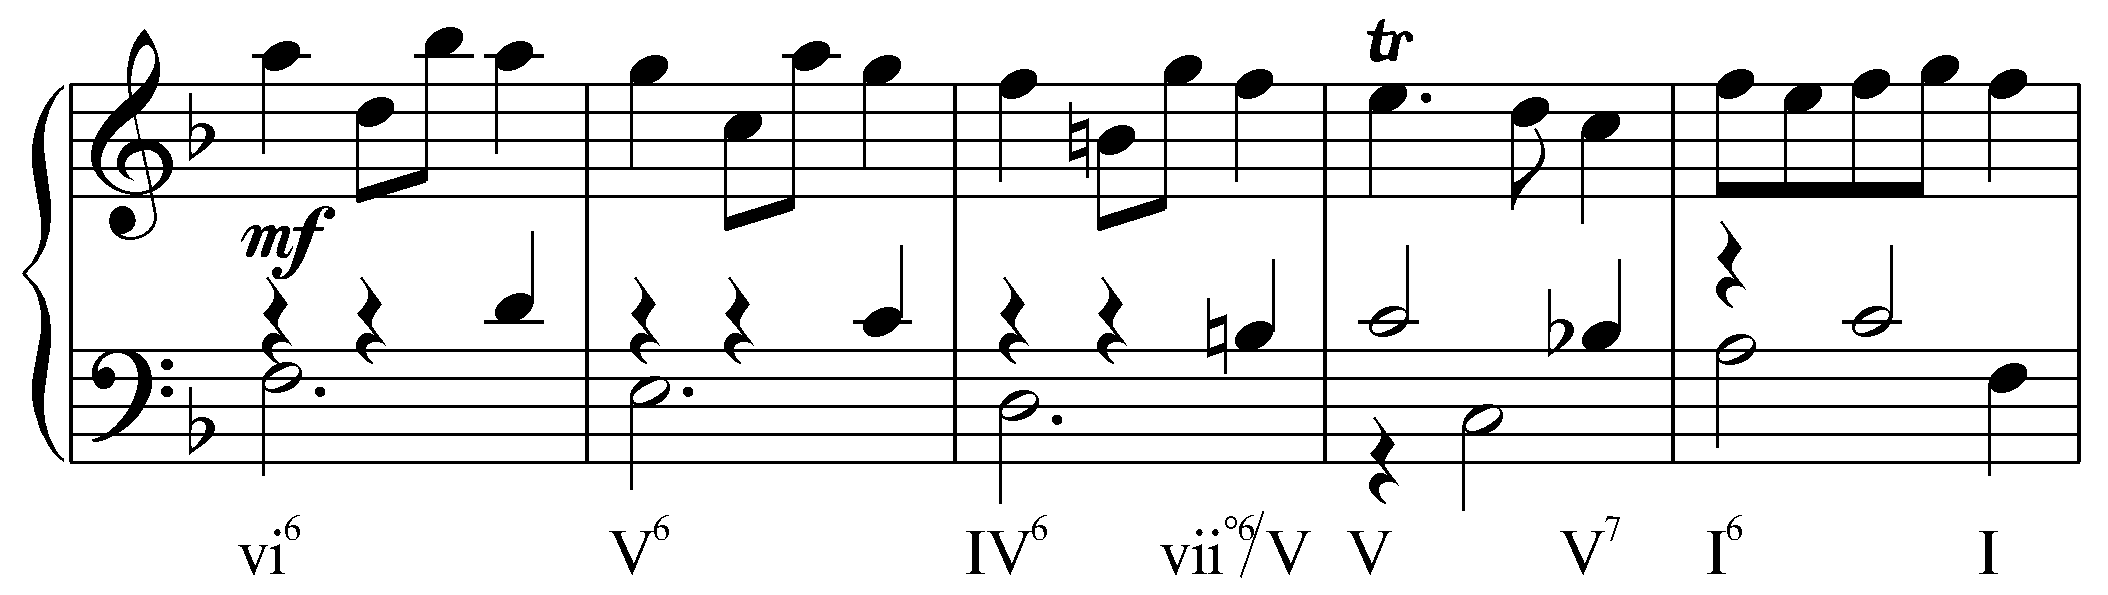 Secondary chords wikipedia viio6v in purcells z669 1696 hexwebz Choice Image